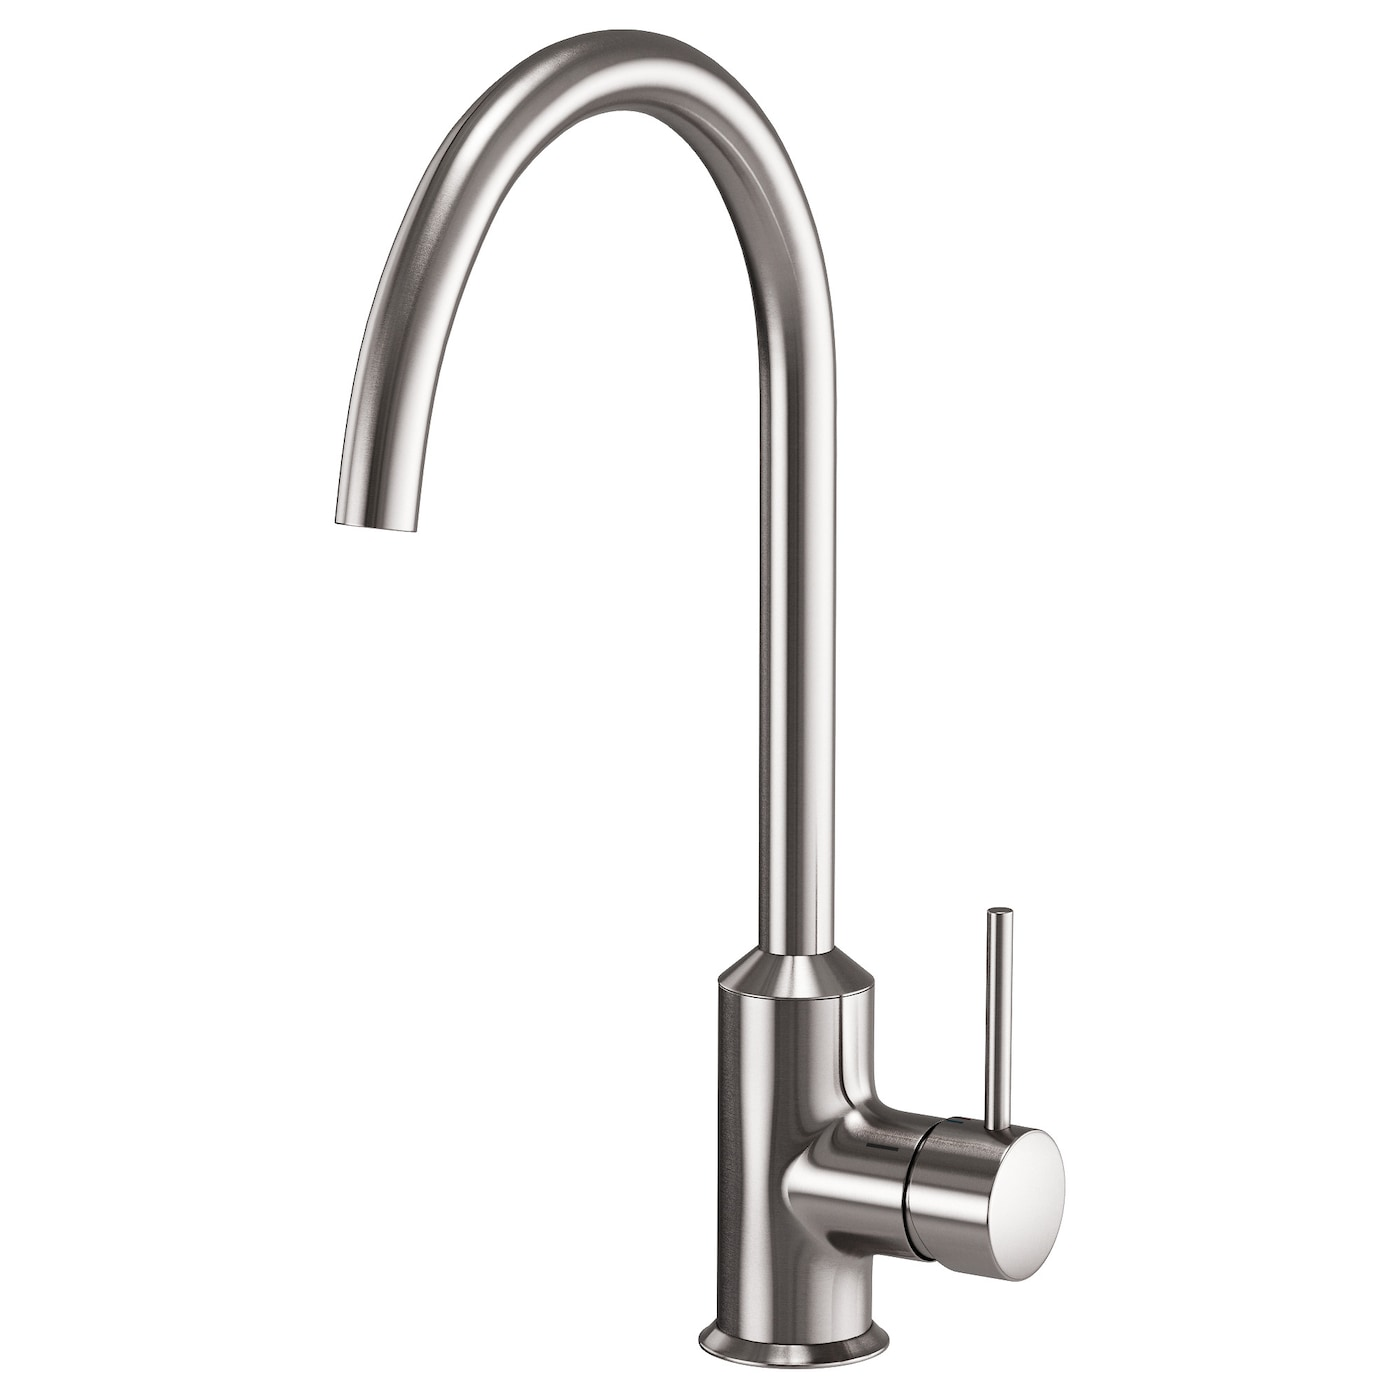 ringsk r single lever kitchen mixer tap stainless steel. Black Bedroom Furniture Sets. Home Design Ideas